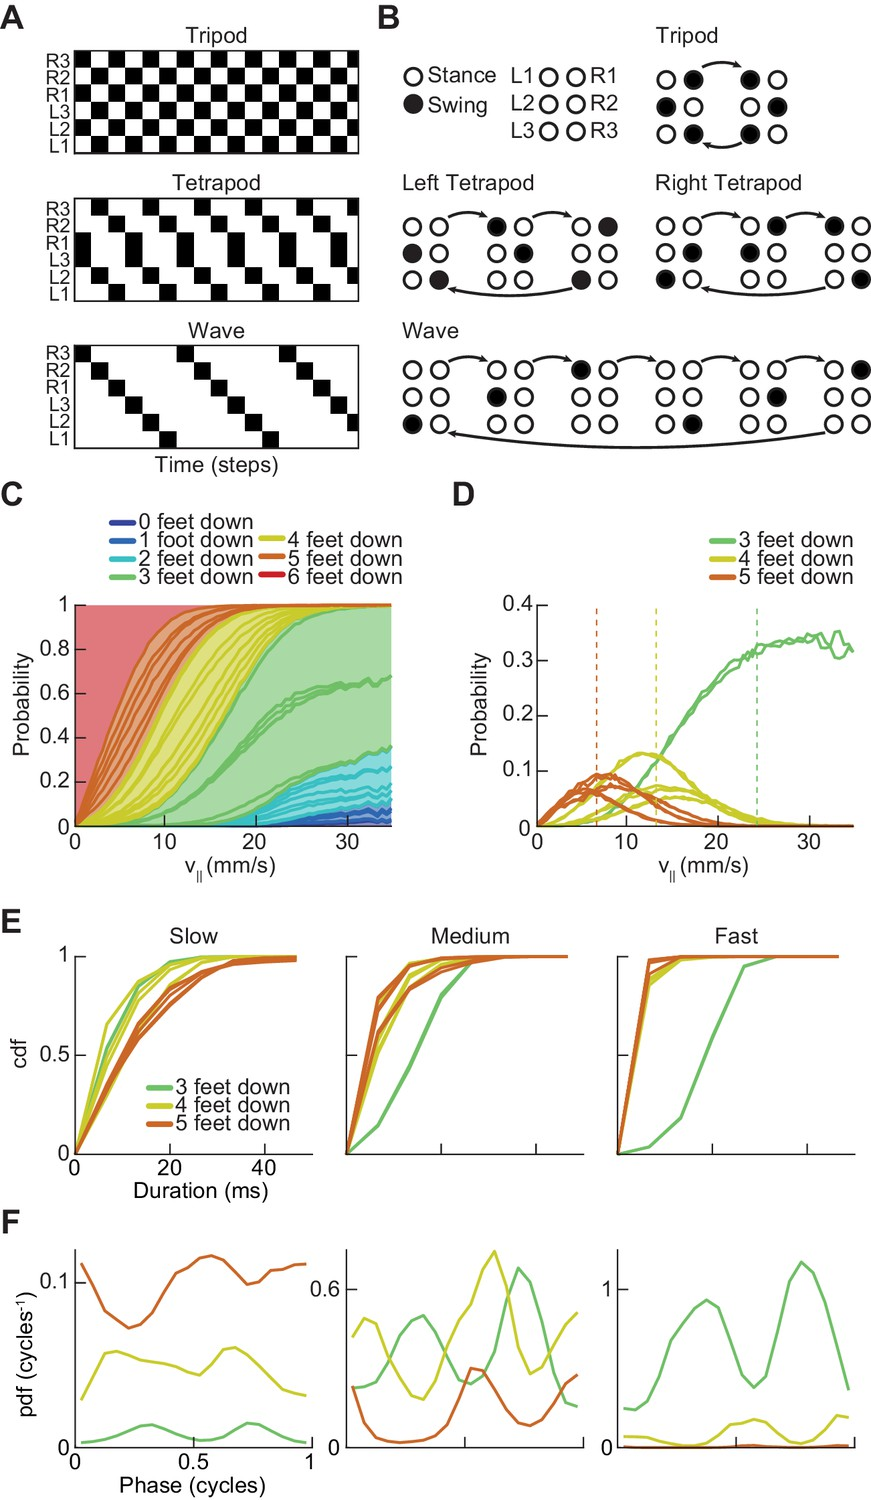 hight resolution of drosophila use a two cycle limb coordination pattern across all walking speeds